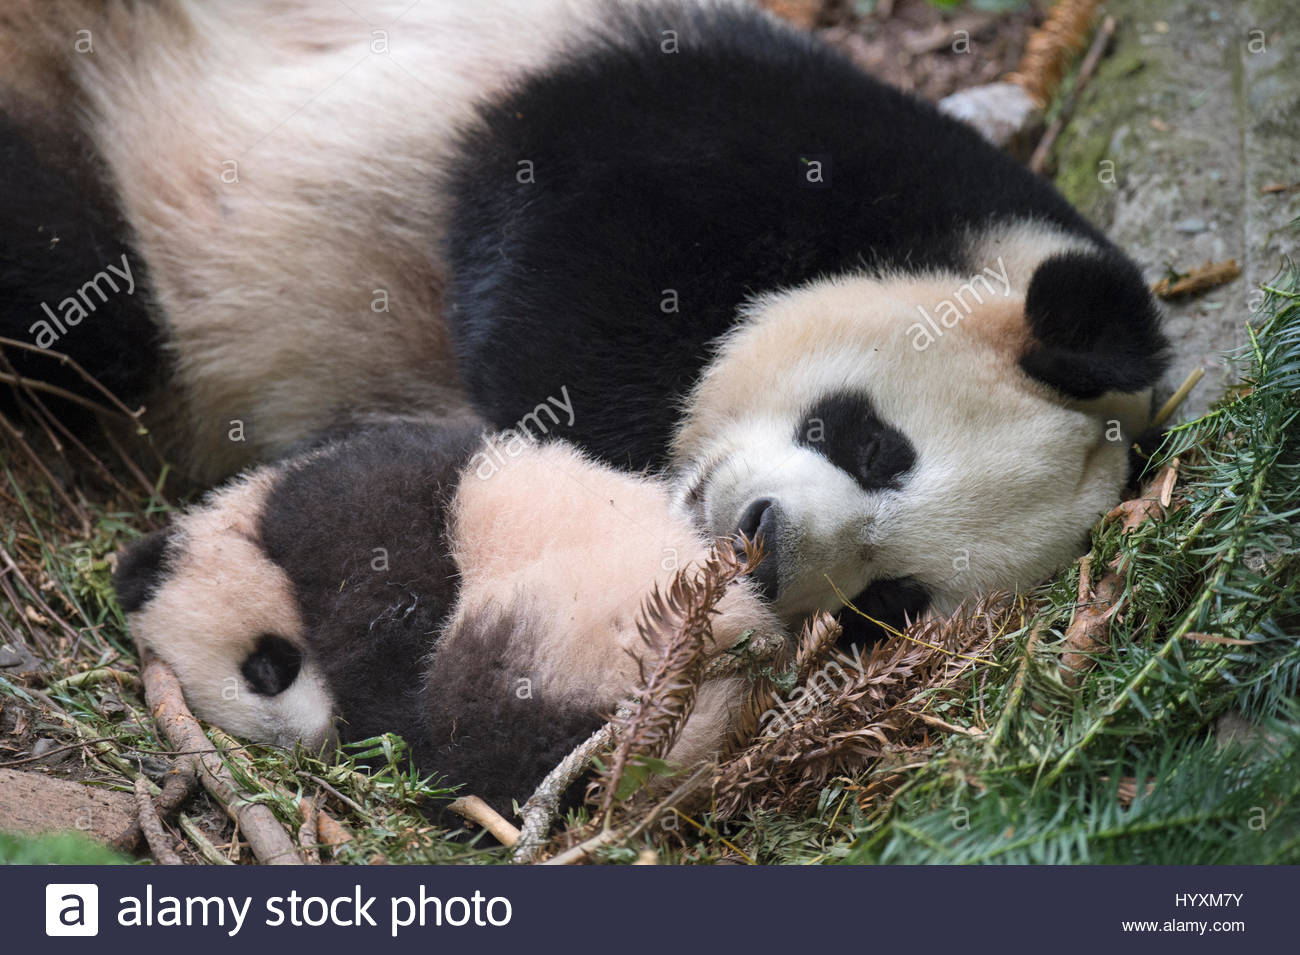 A giant panda mothers sleeps with her cub at the Wolong Nature Reserve. - Stock Image